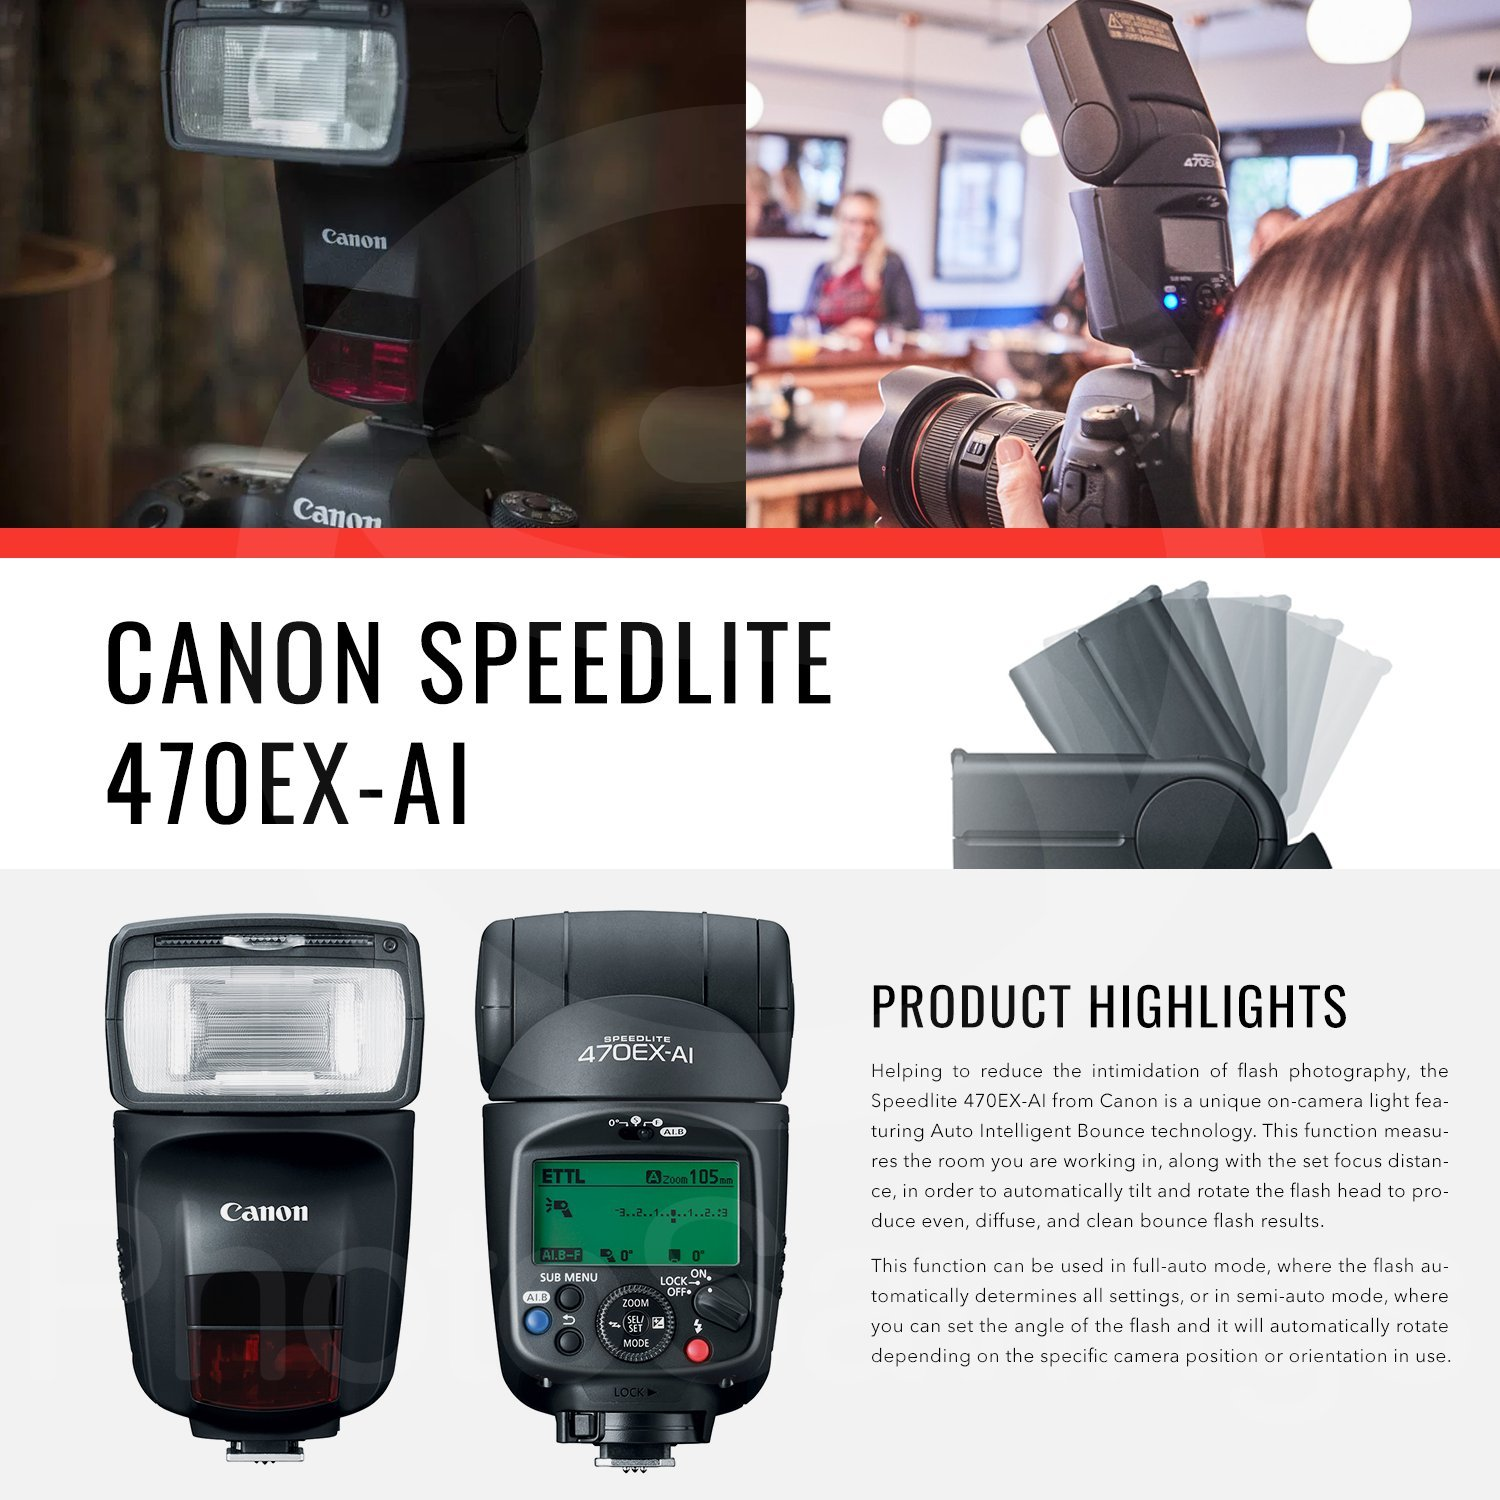 Canon Speedlite 470EX-AI Flash with Diffuser, Batteries & Charger Kit, Xpix Cleaning Accessories, and Basic Photo Bundle by Canon (Image #2)